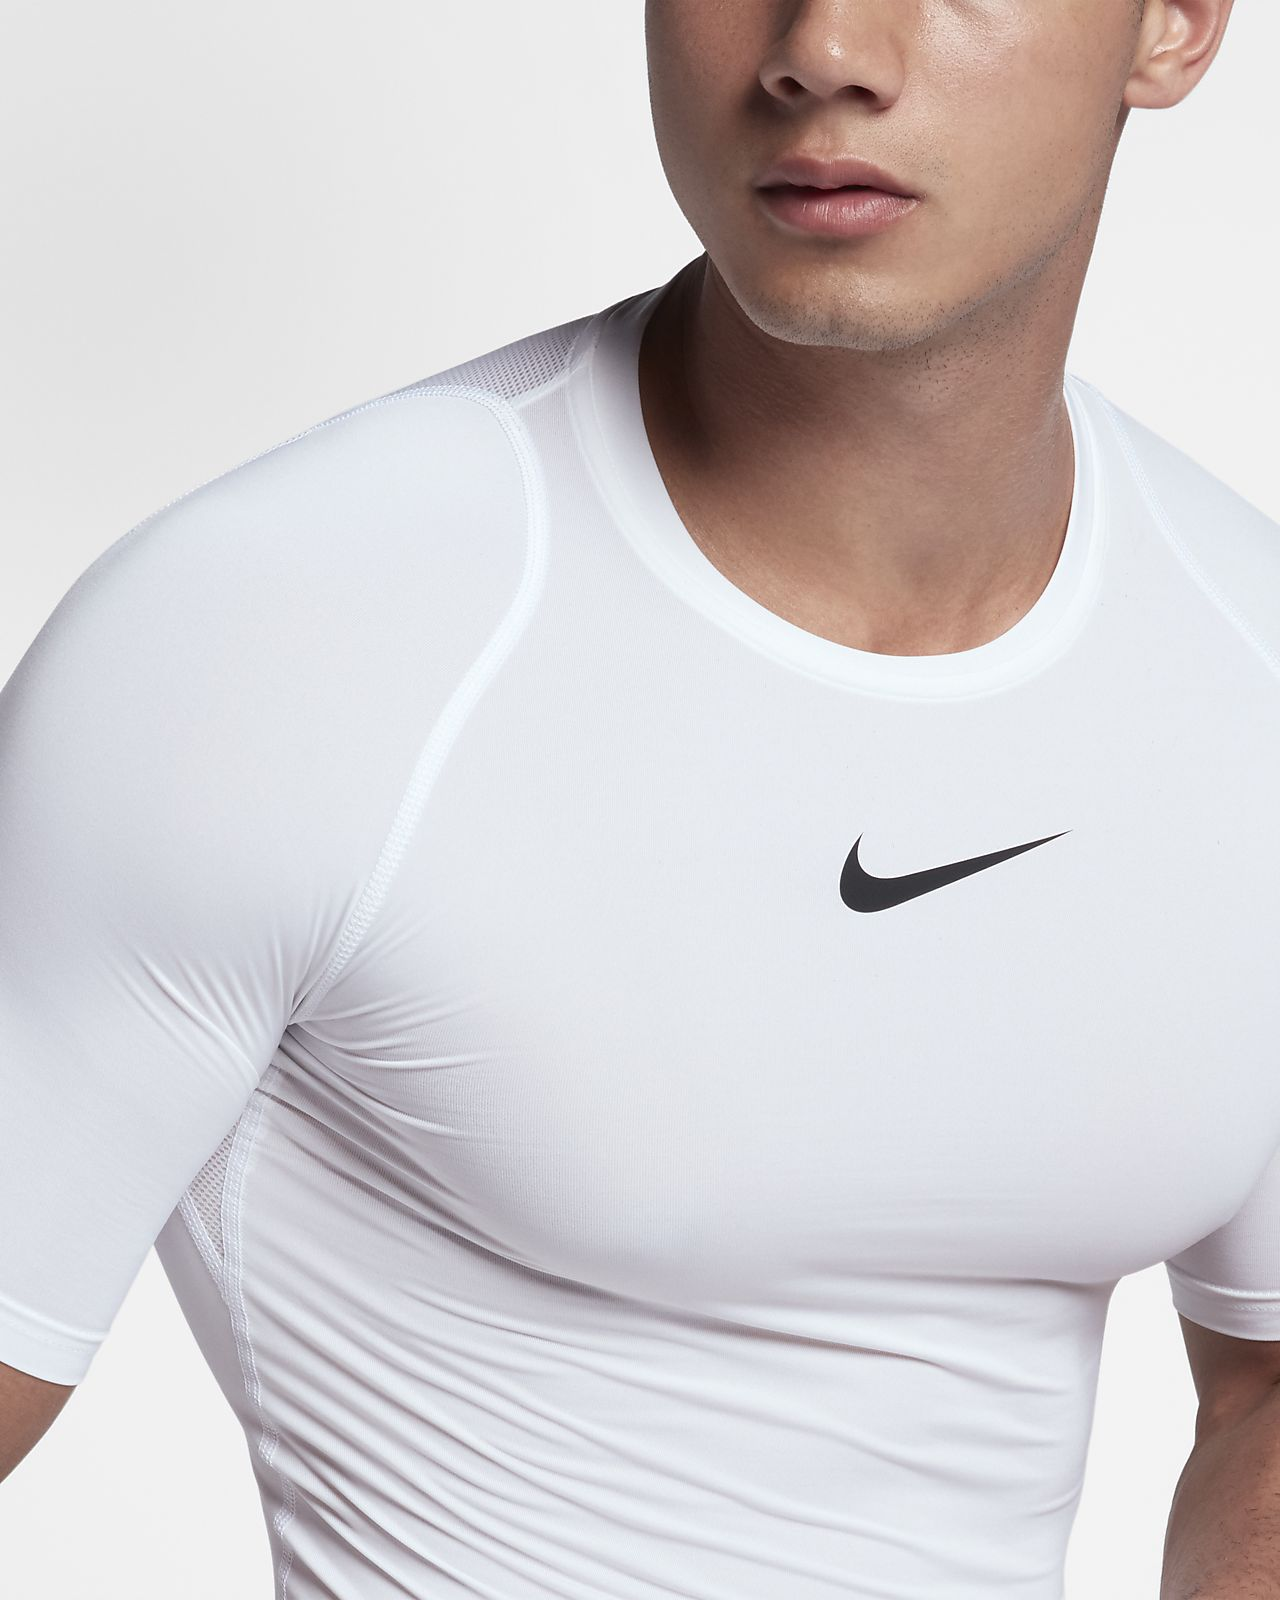 Nike Pro Men's Short-Sleeve Training Top